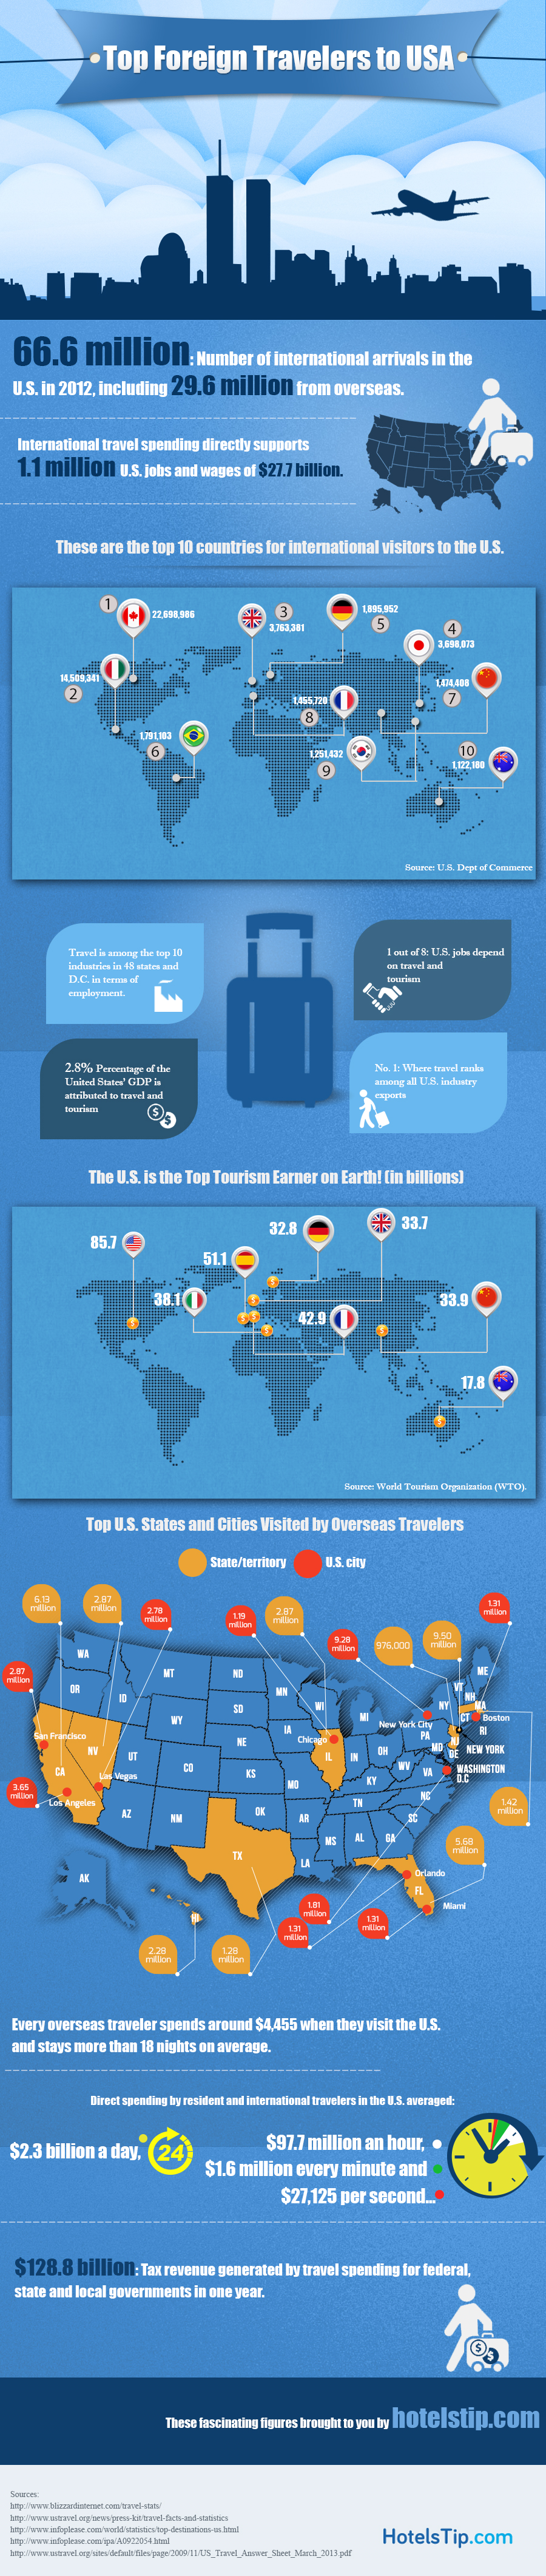 Top Foreign Travelers to USA